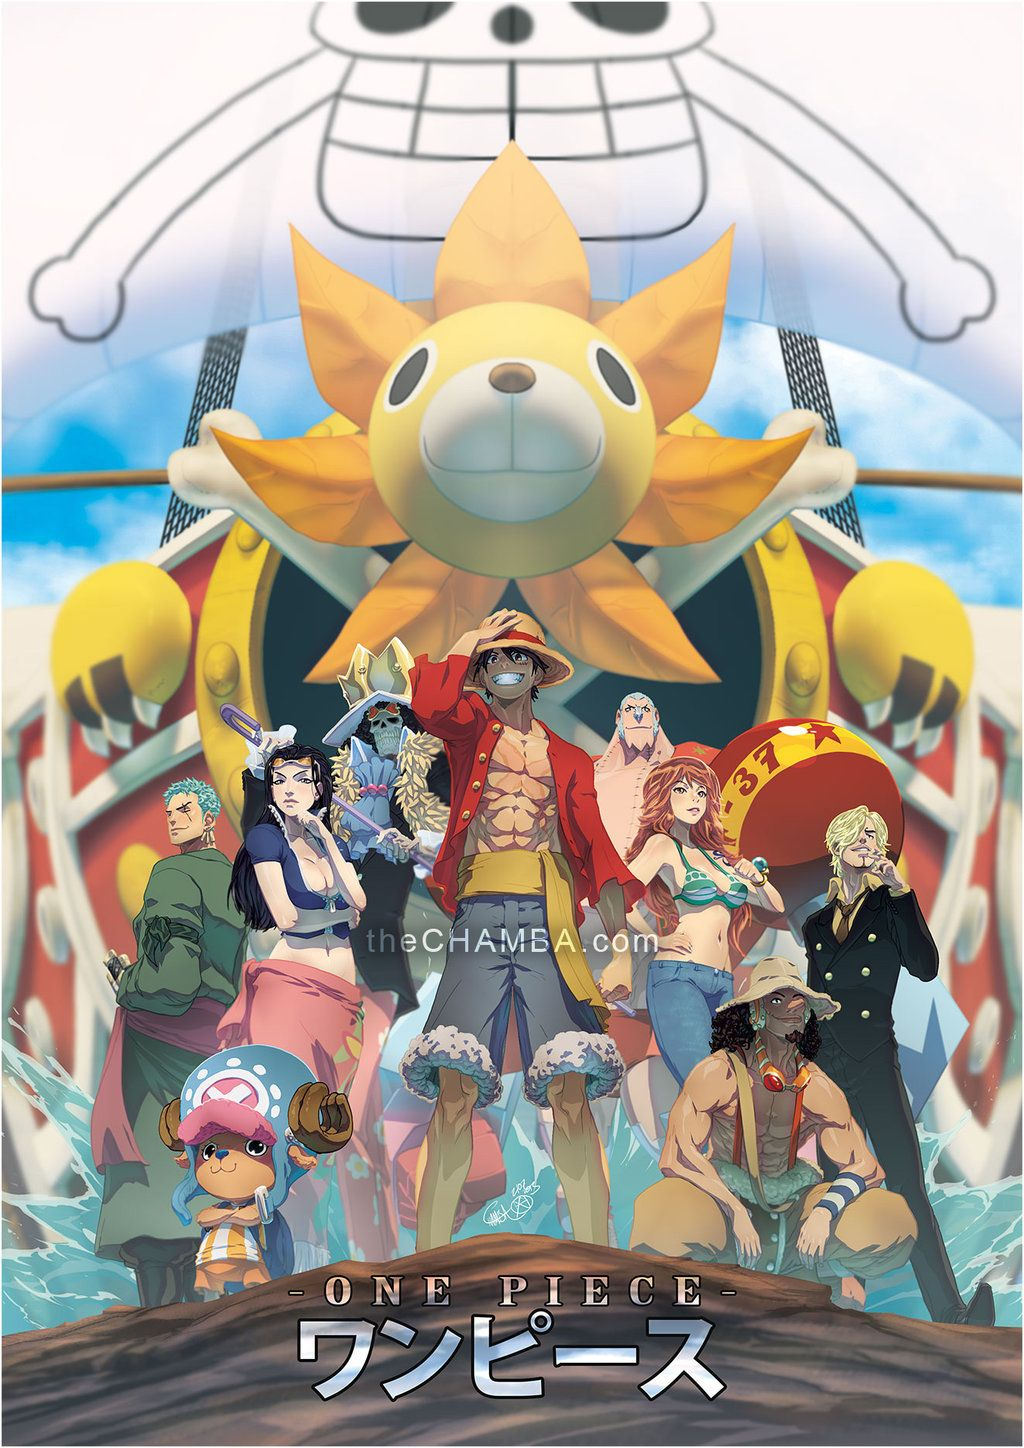 We Are The Strawhats By Thechamba Deviantart Com On Deviantart One Piece Anime One Piece Manga One Piece Wallpaper Iphone Deviantart wallpaper anime one piece